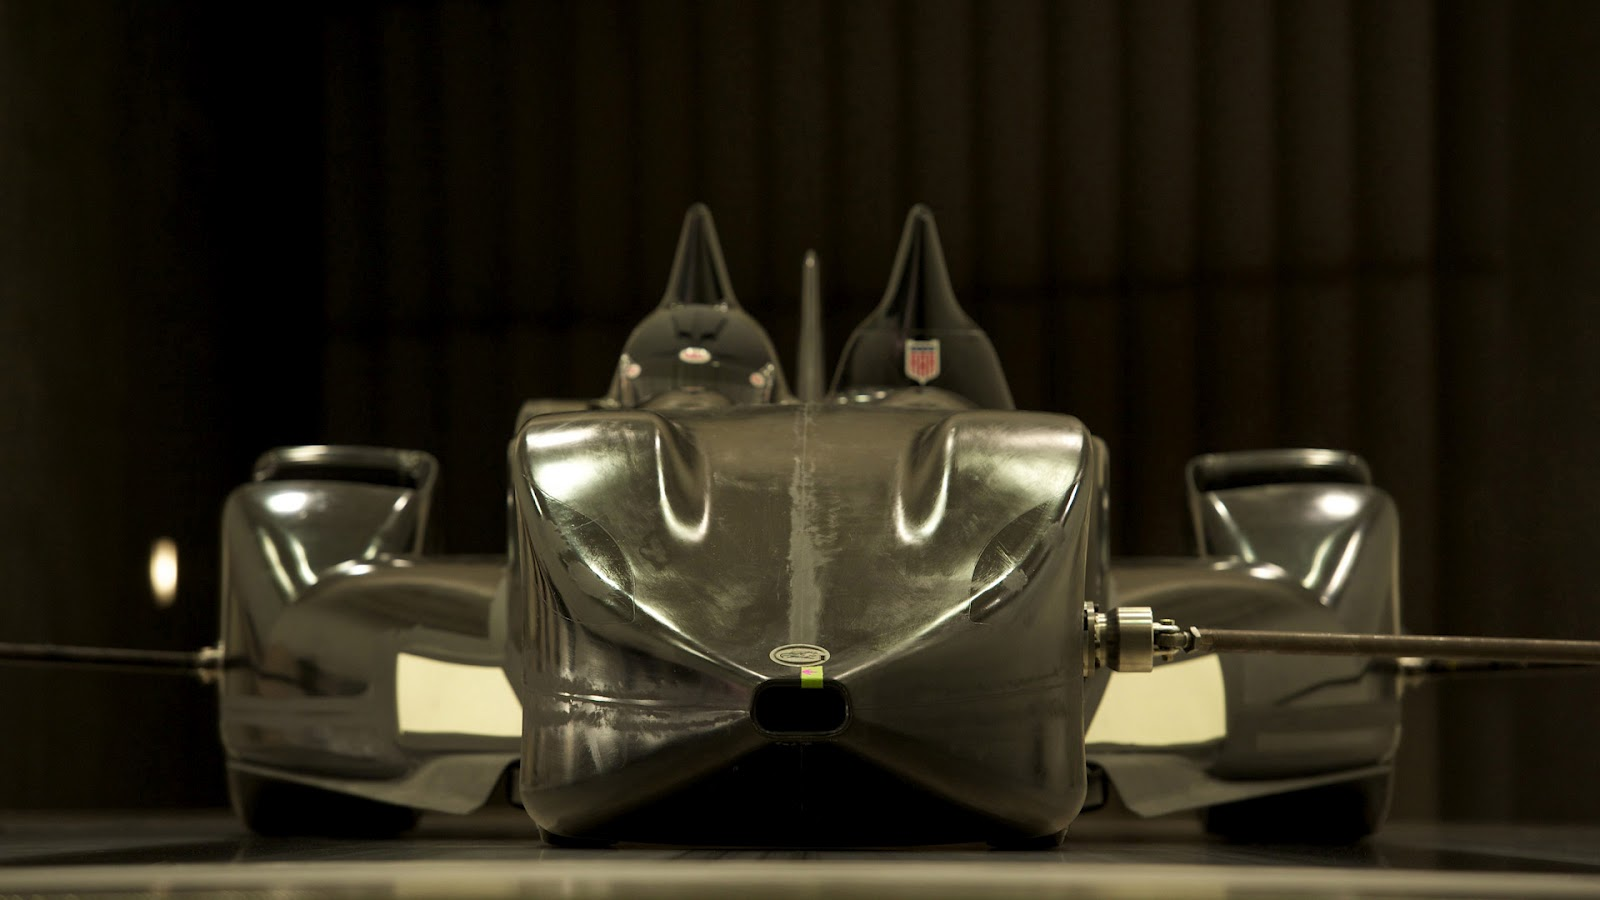 2012 Nissan Delta Wing Front (Photo 4 of 12)